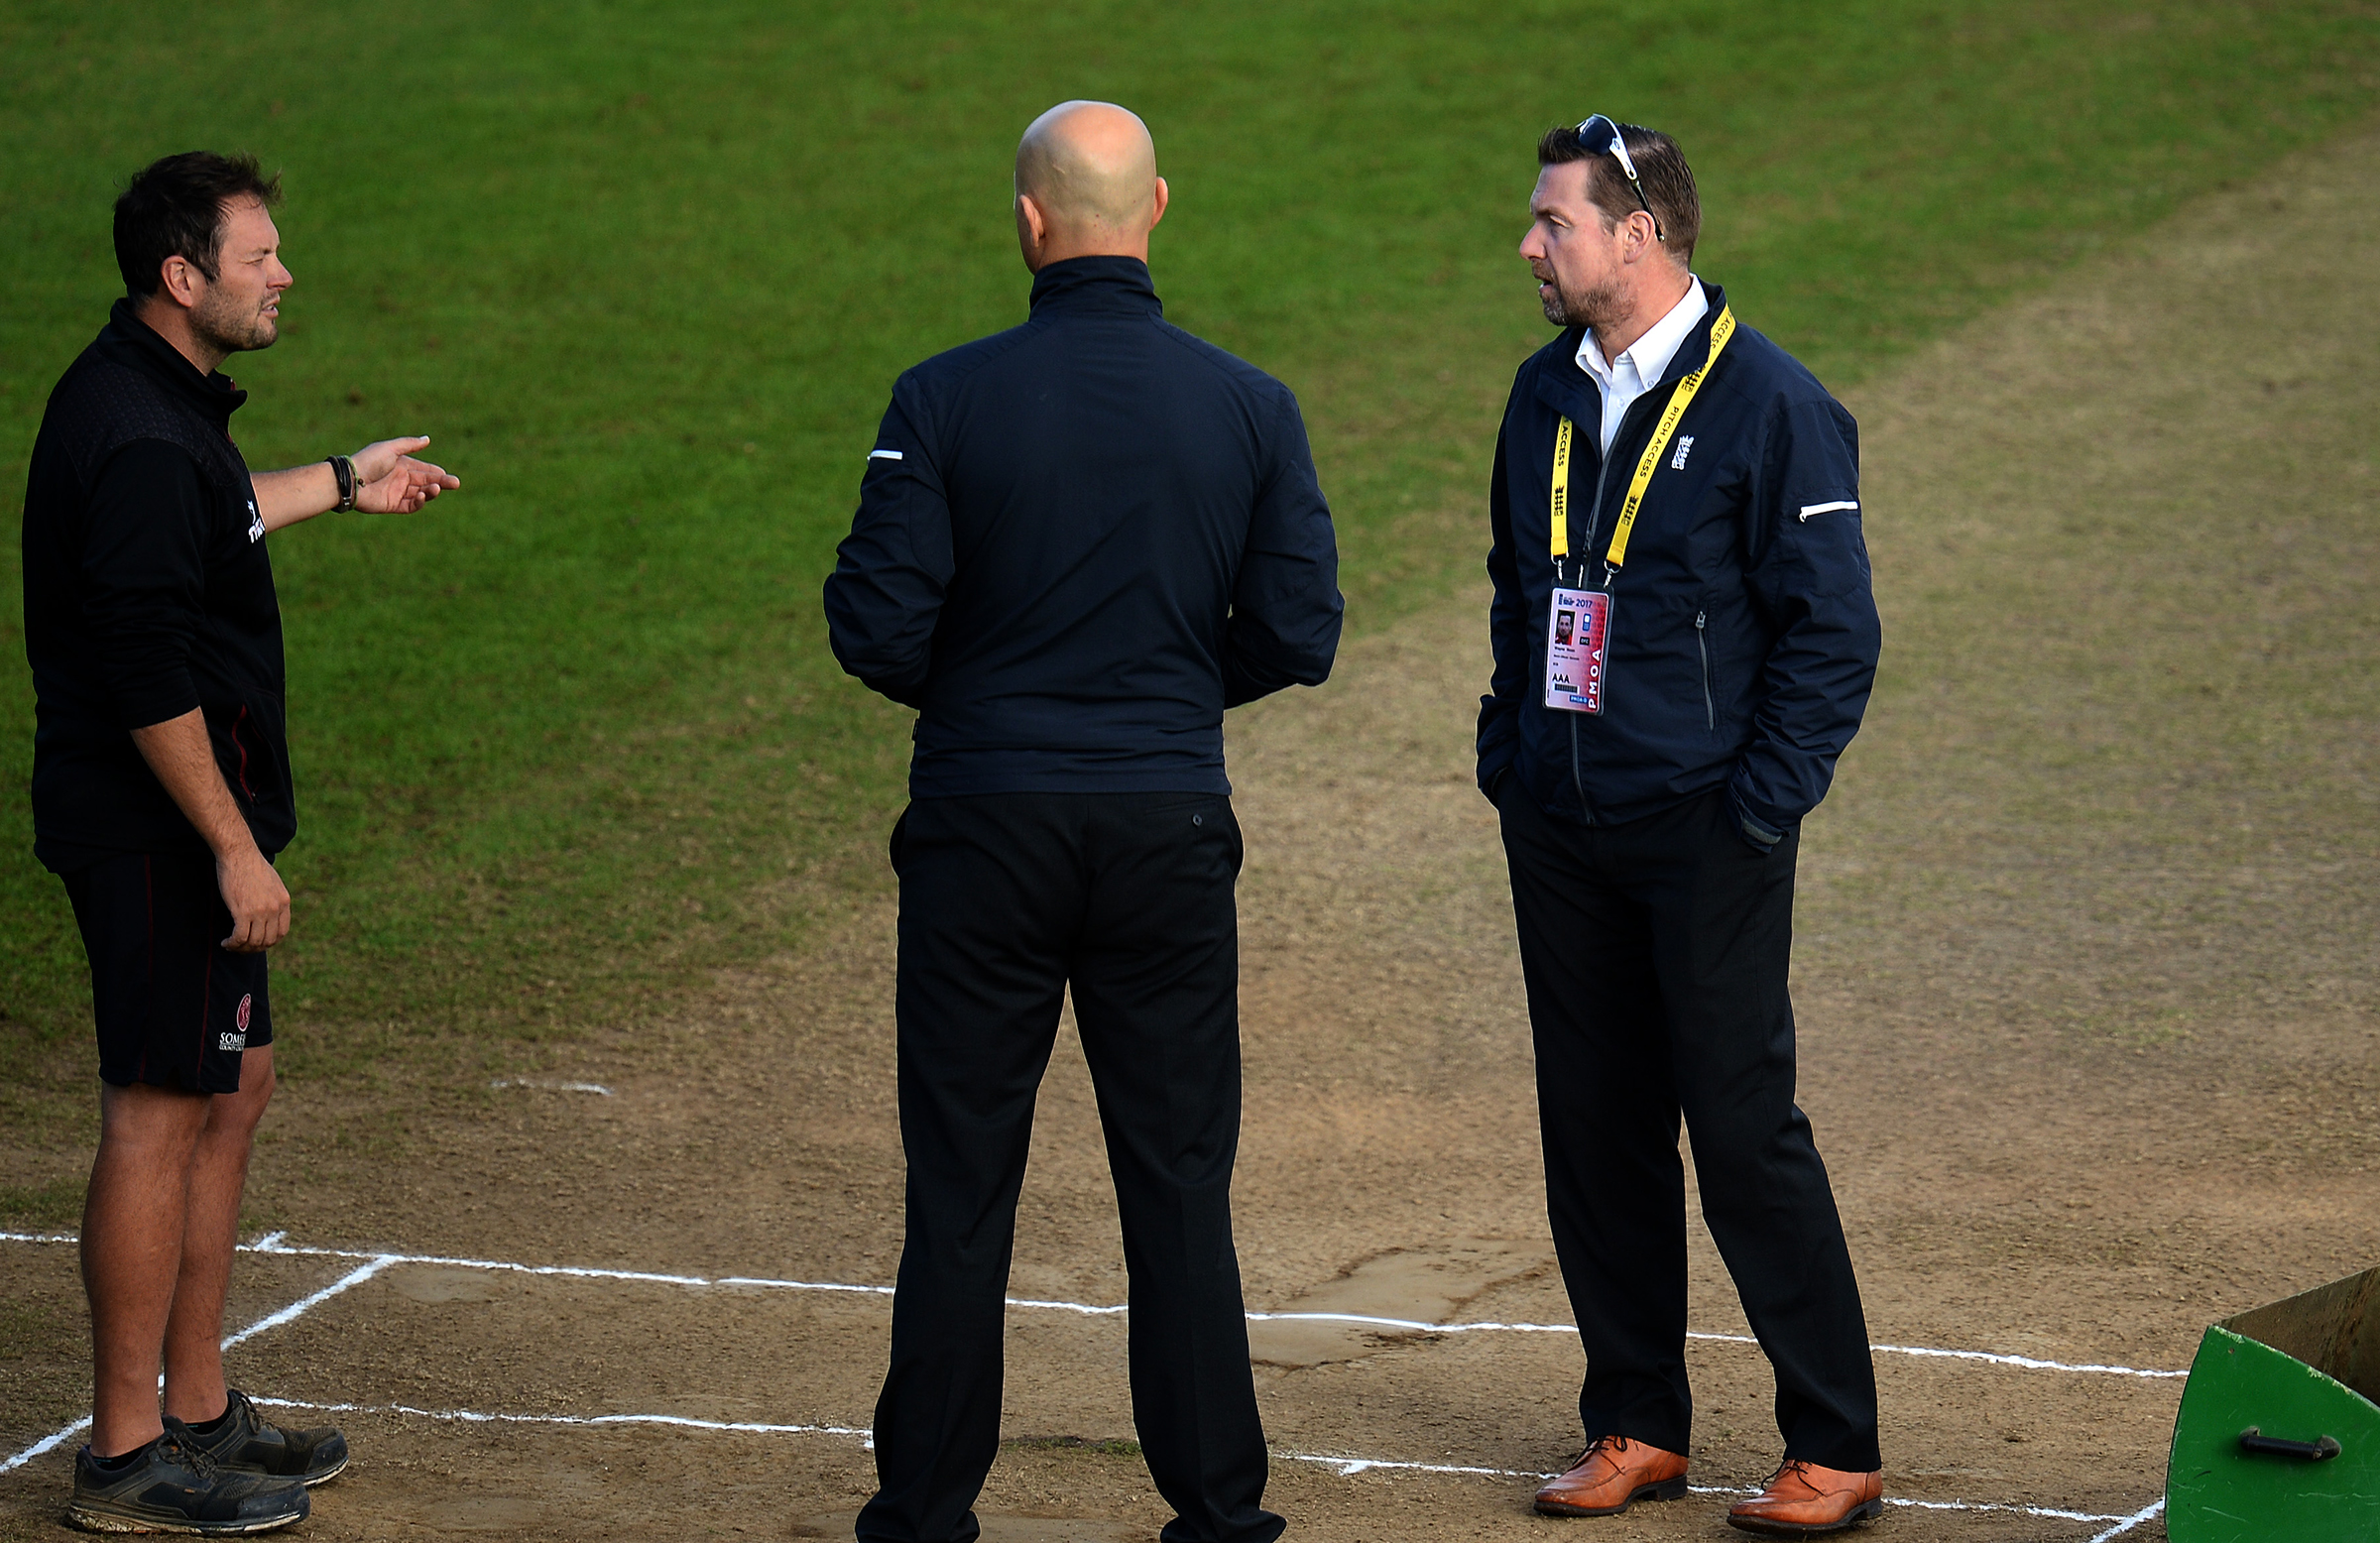 Taunton groundsman Simon Lee (l) chats with umpire Alex Wharf (c) and the ECB's Wayne Noon (r) // Getty